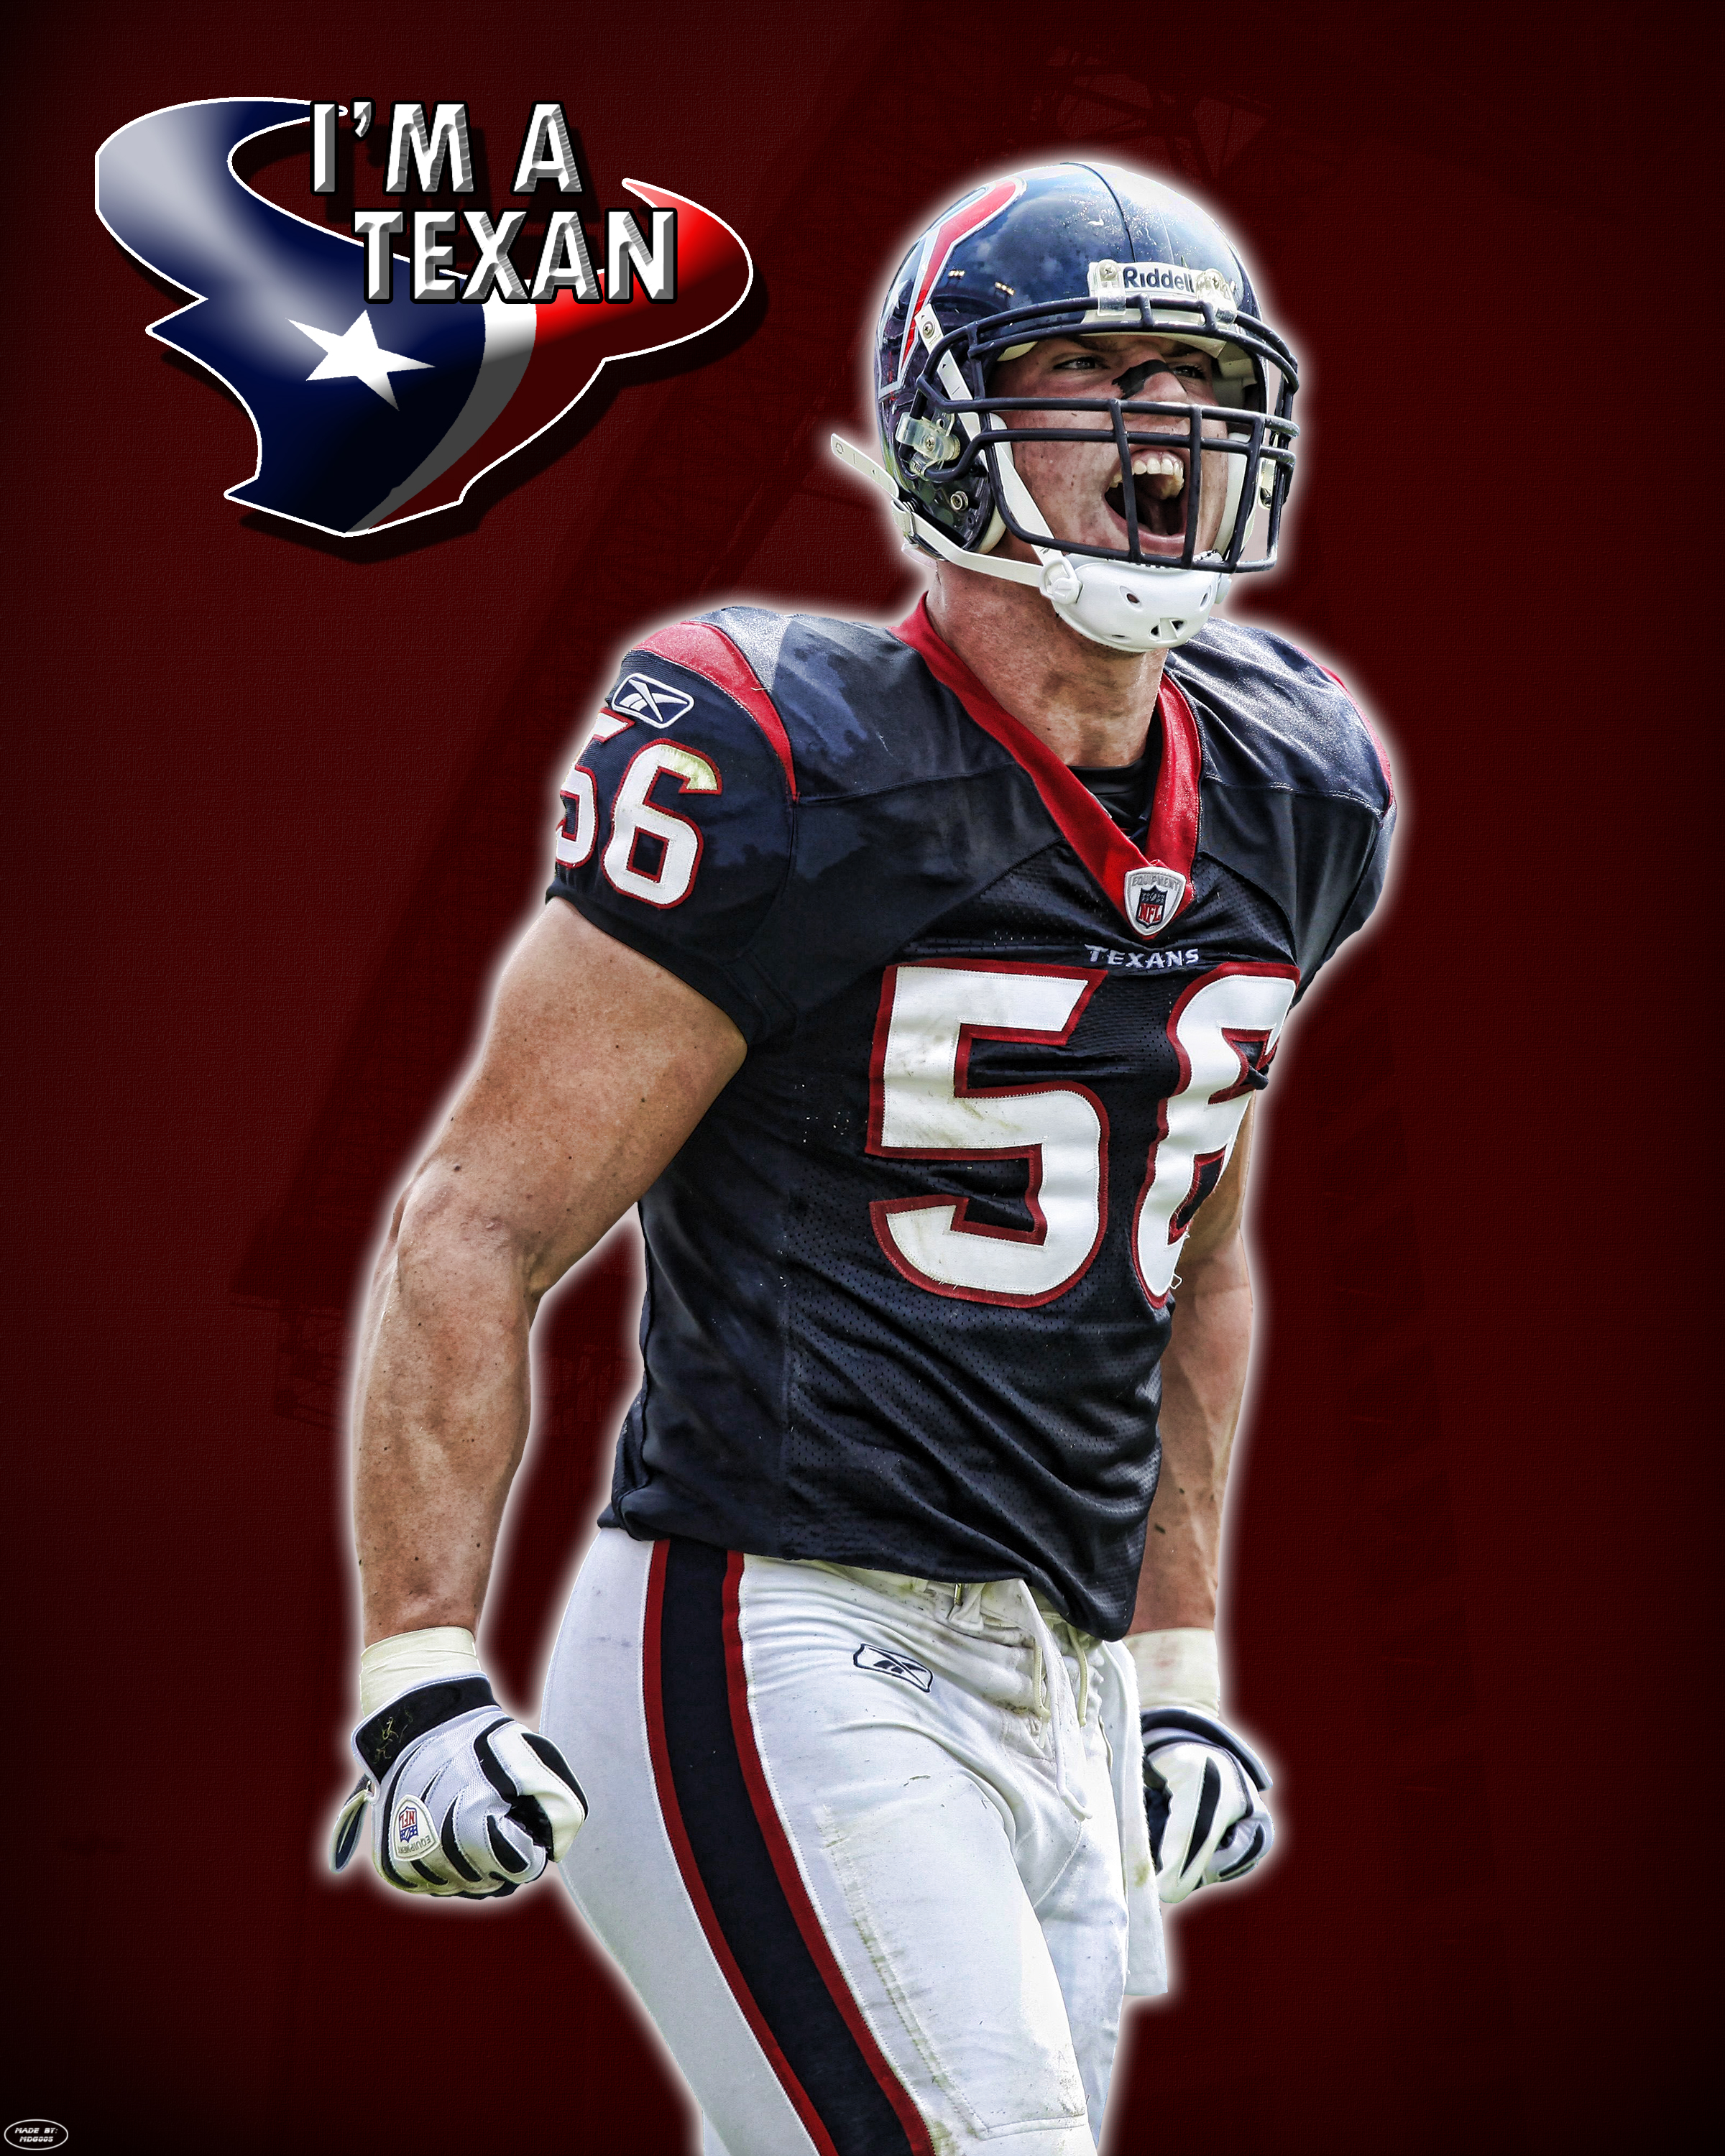 Brian Cushing HD Picture 5539 NFL Wallpaper Res 2400x3000 NFL 2400x3000